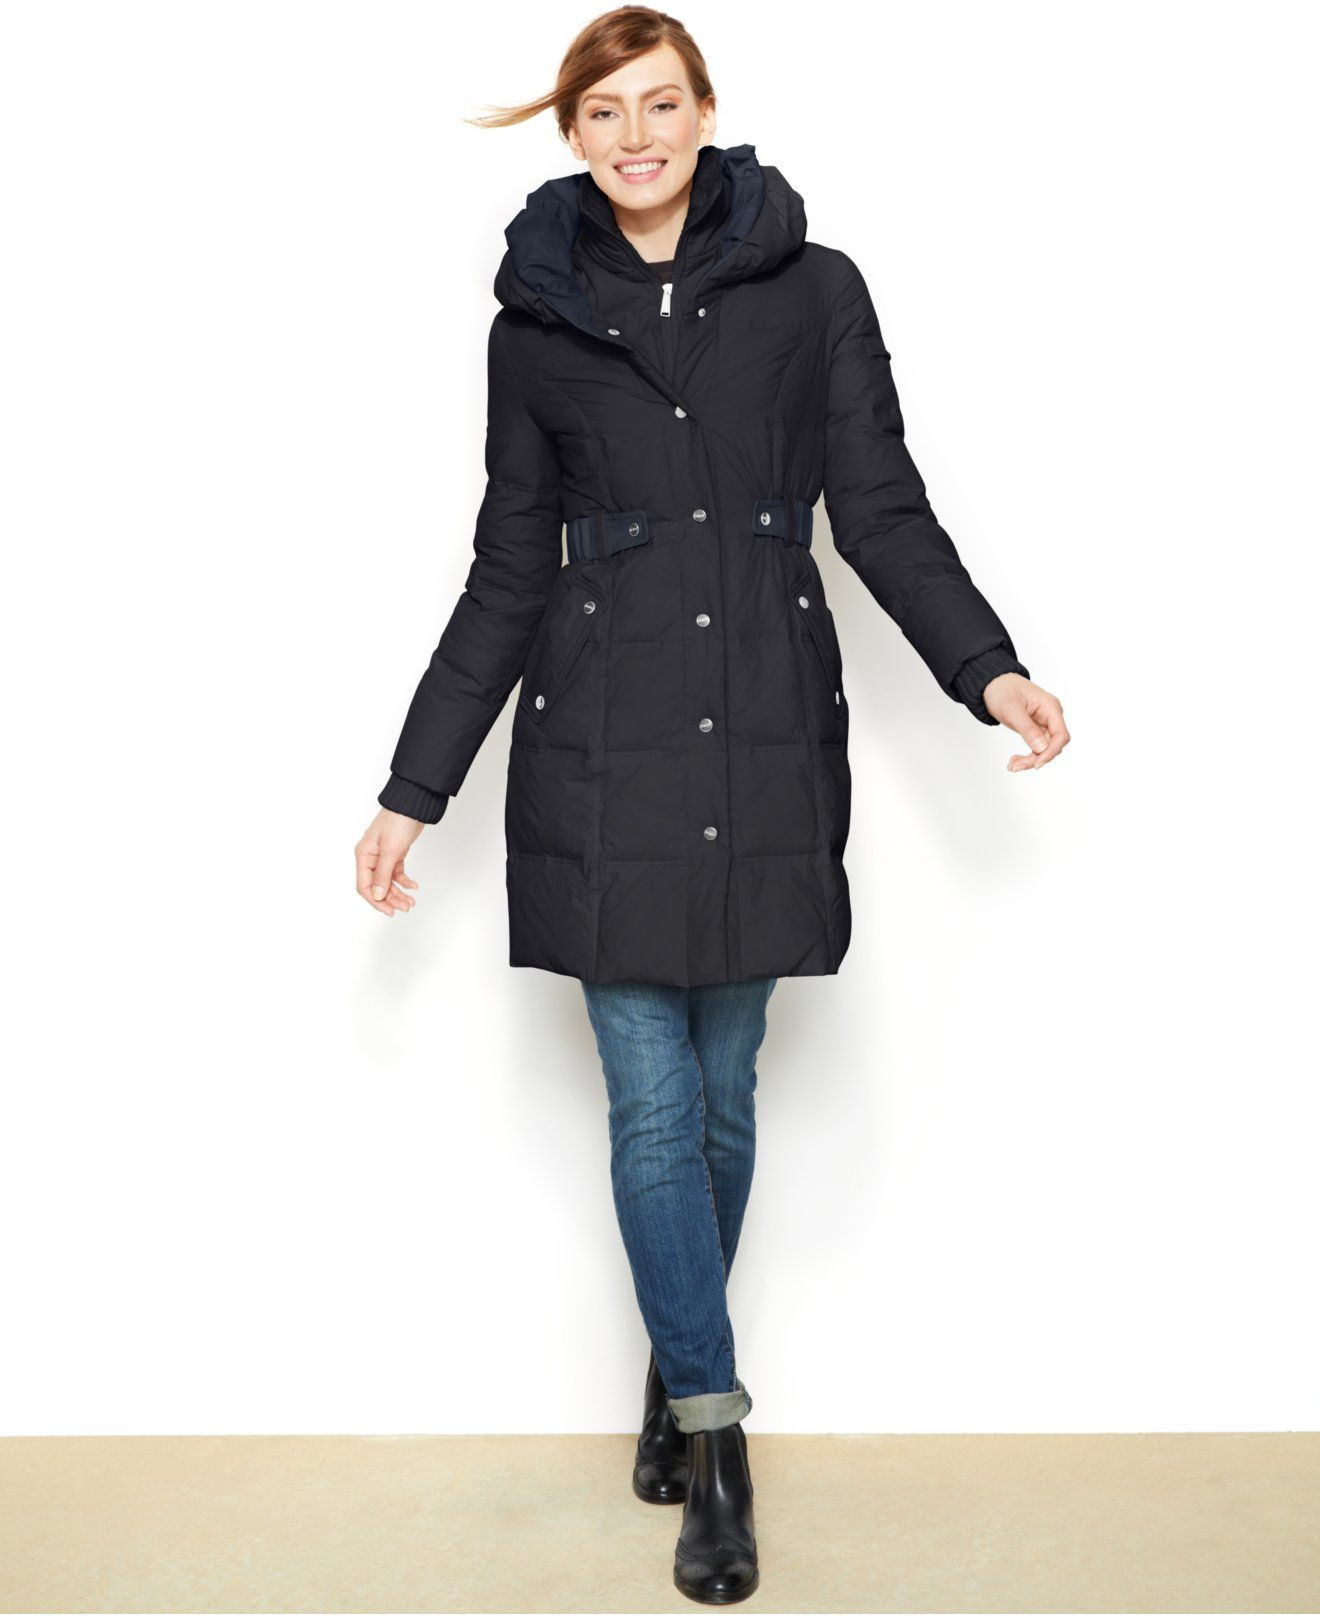 7176f2b72 DKNY Belted Quilted Long-Length Down Puffer Coat - Coats - Women ...